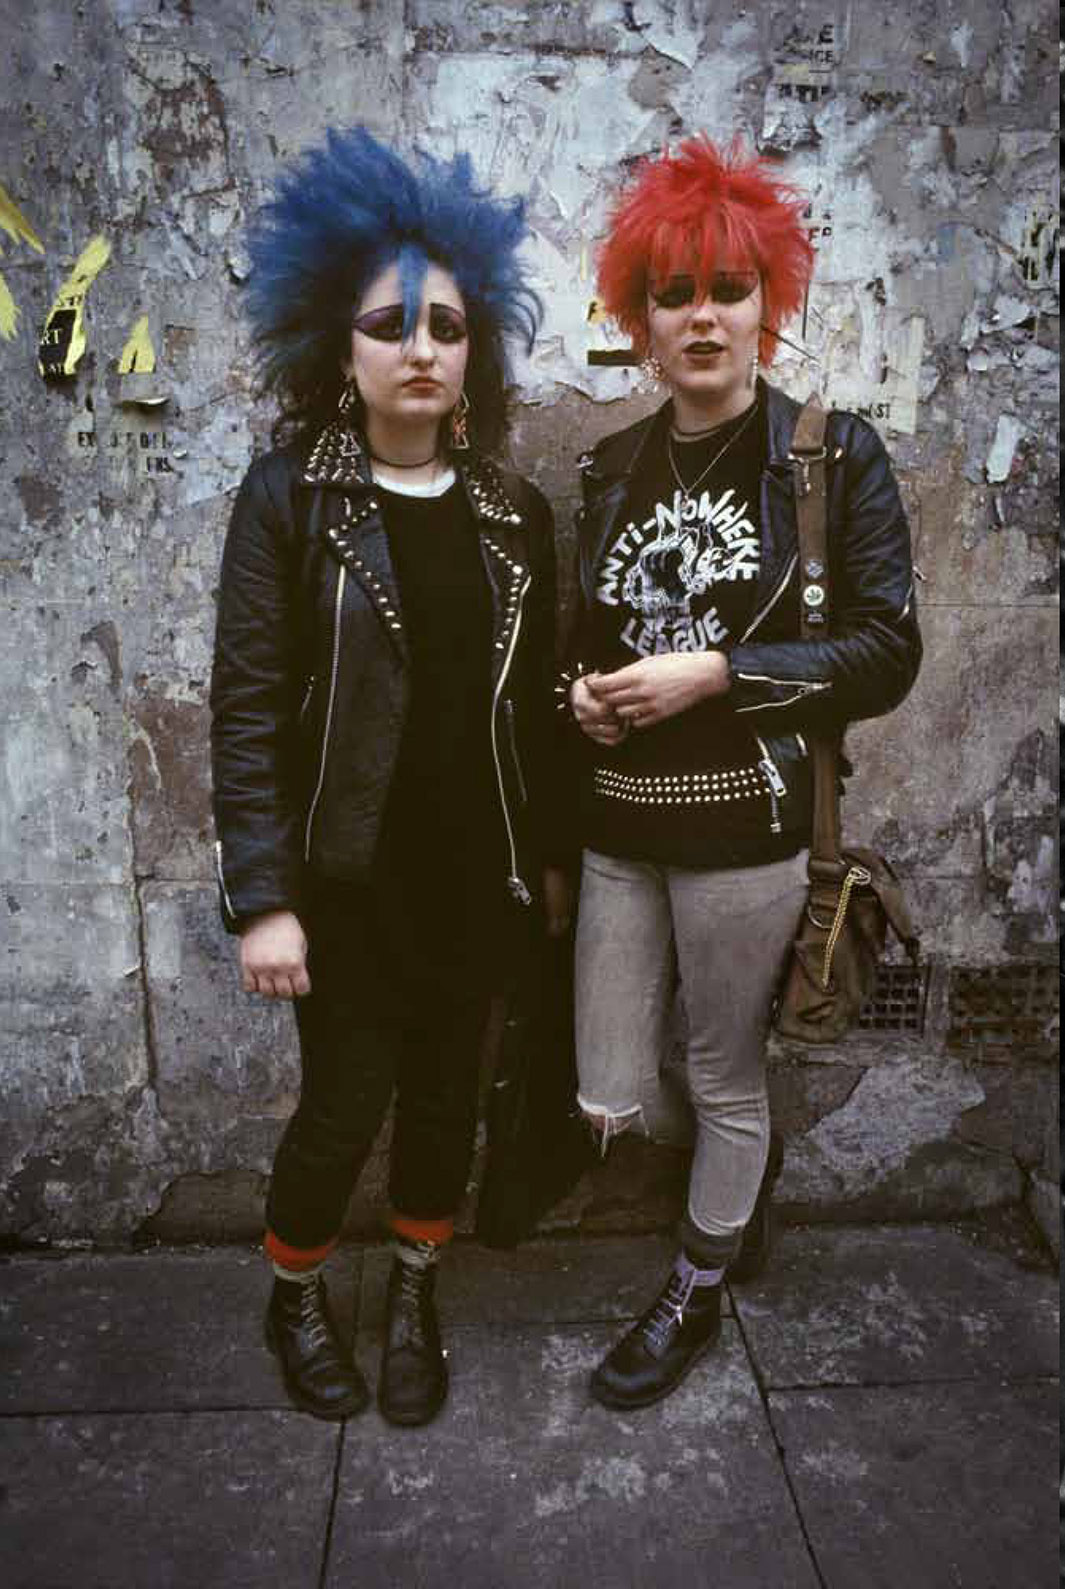 portraits of london youth culture in the 1970s and  u201980s